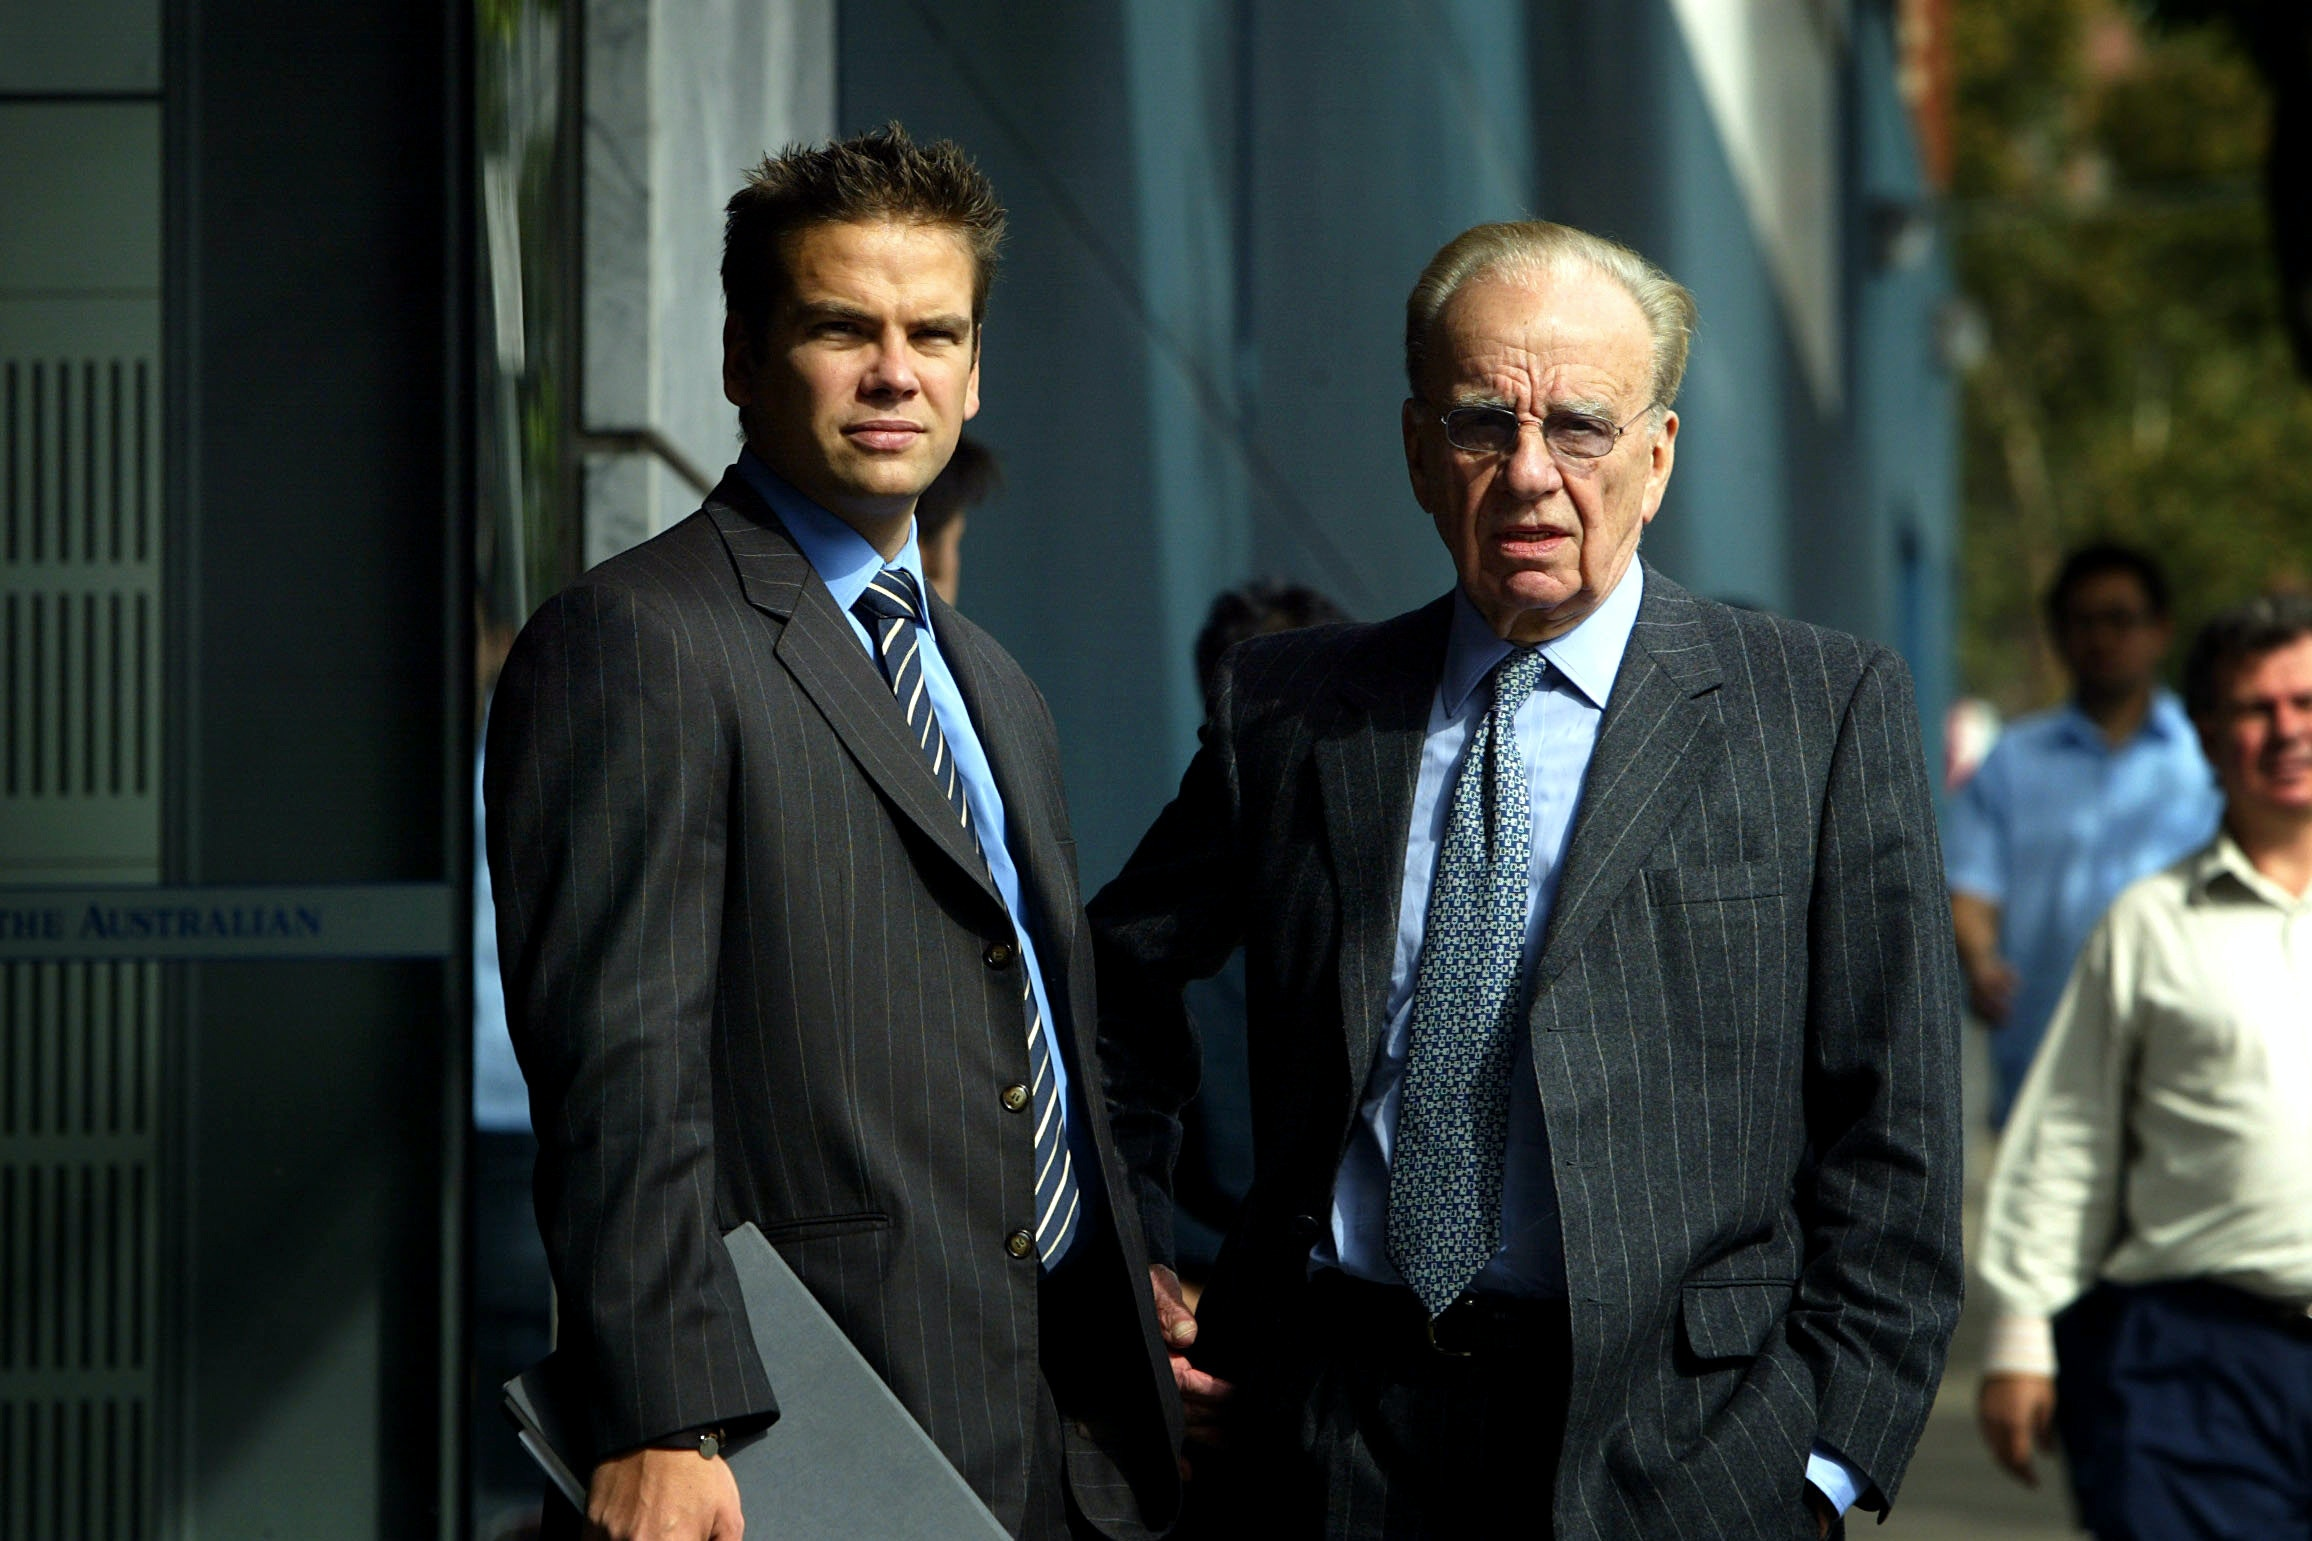 Lachlan Murdoch: From Philosophy Student to Fox News Chief